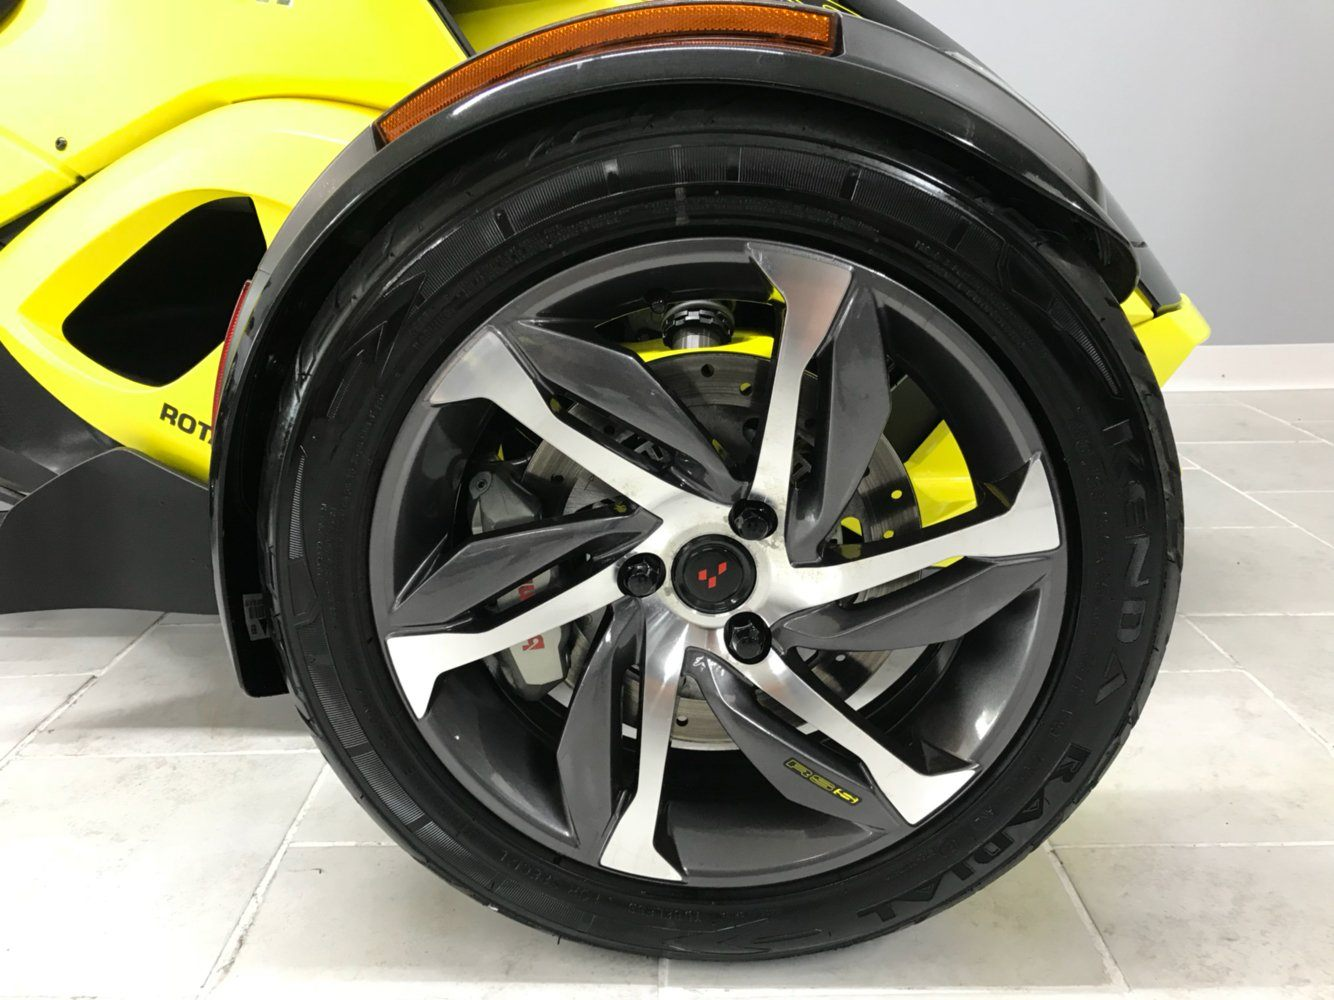 2014 Can-Am™ Spyder RS-S SM5 7